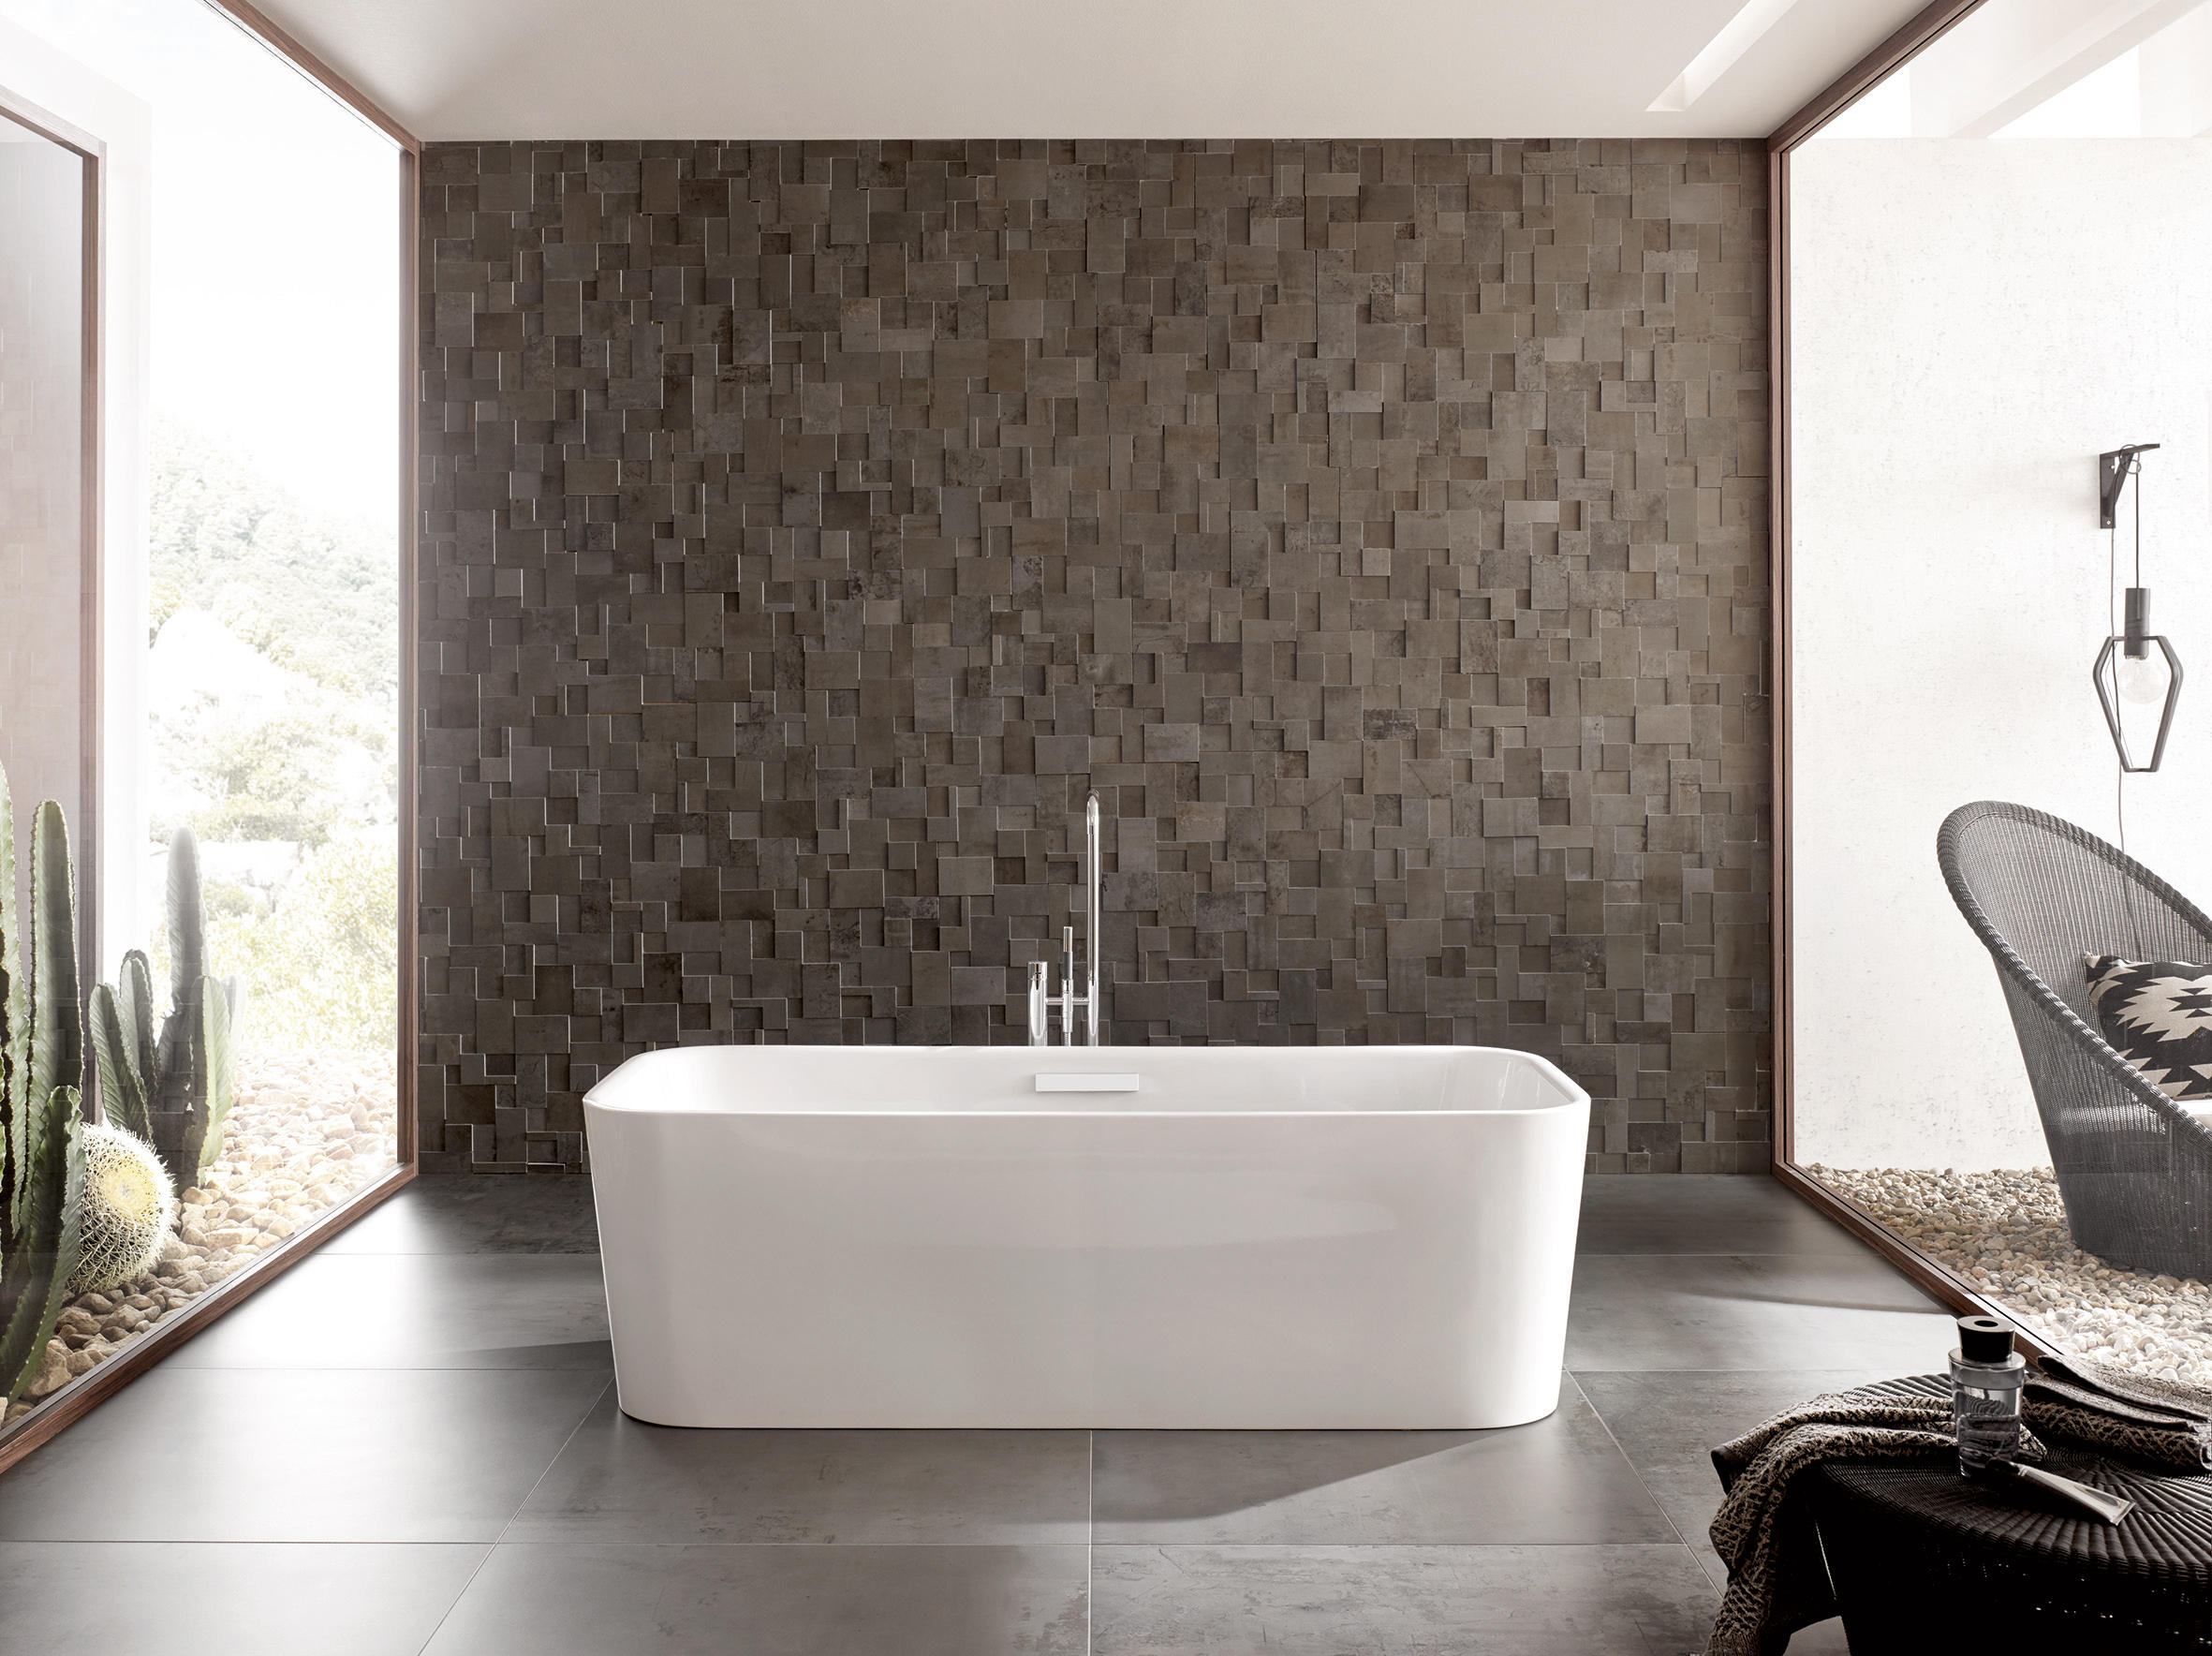 betteart monolith wash basins from bette architonic. Black Bedroom Furniture Sets. Home Design Ideas